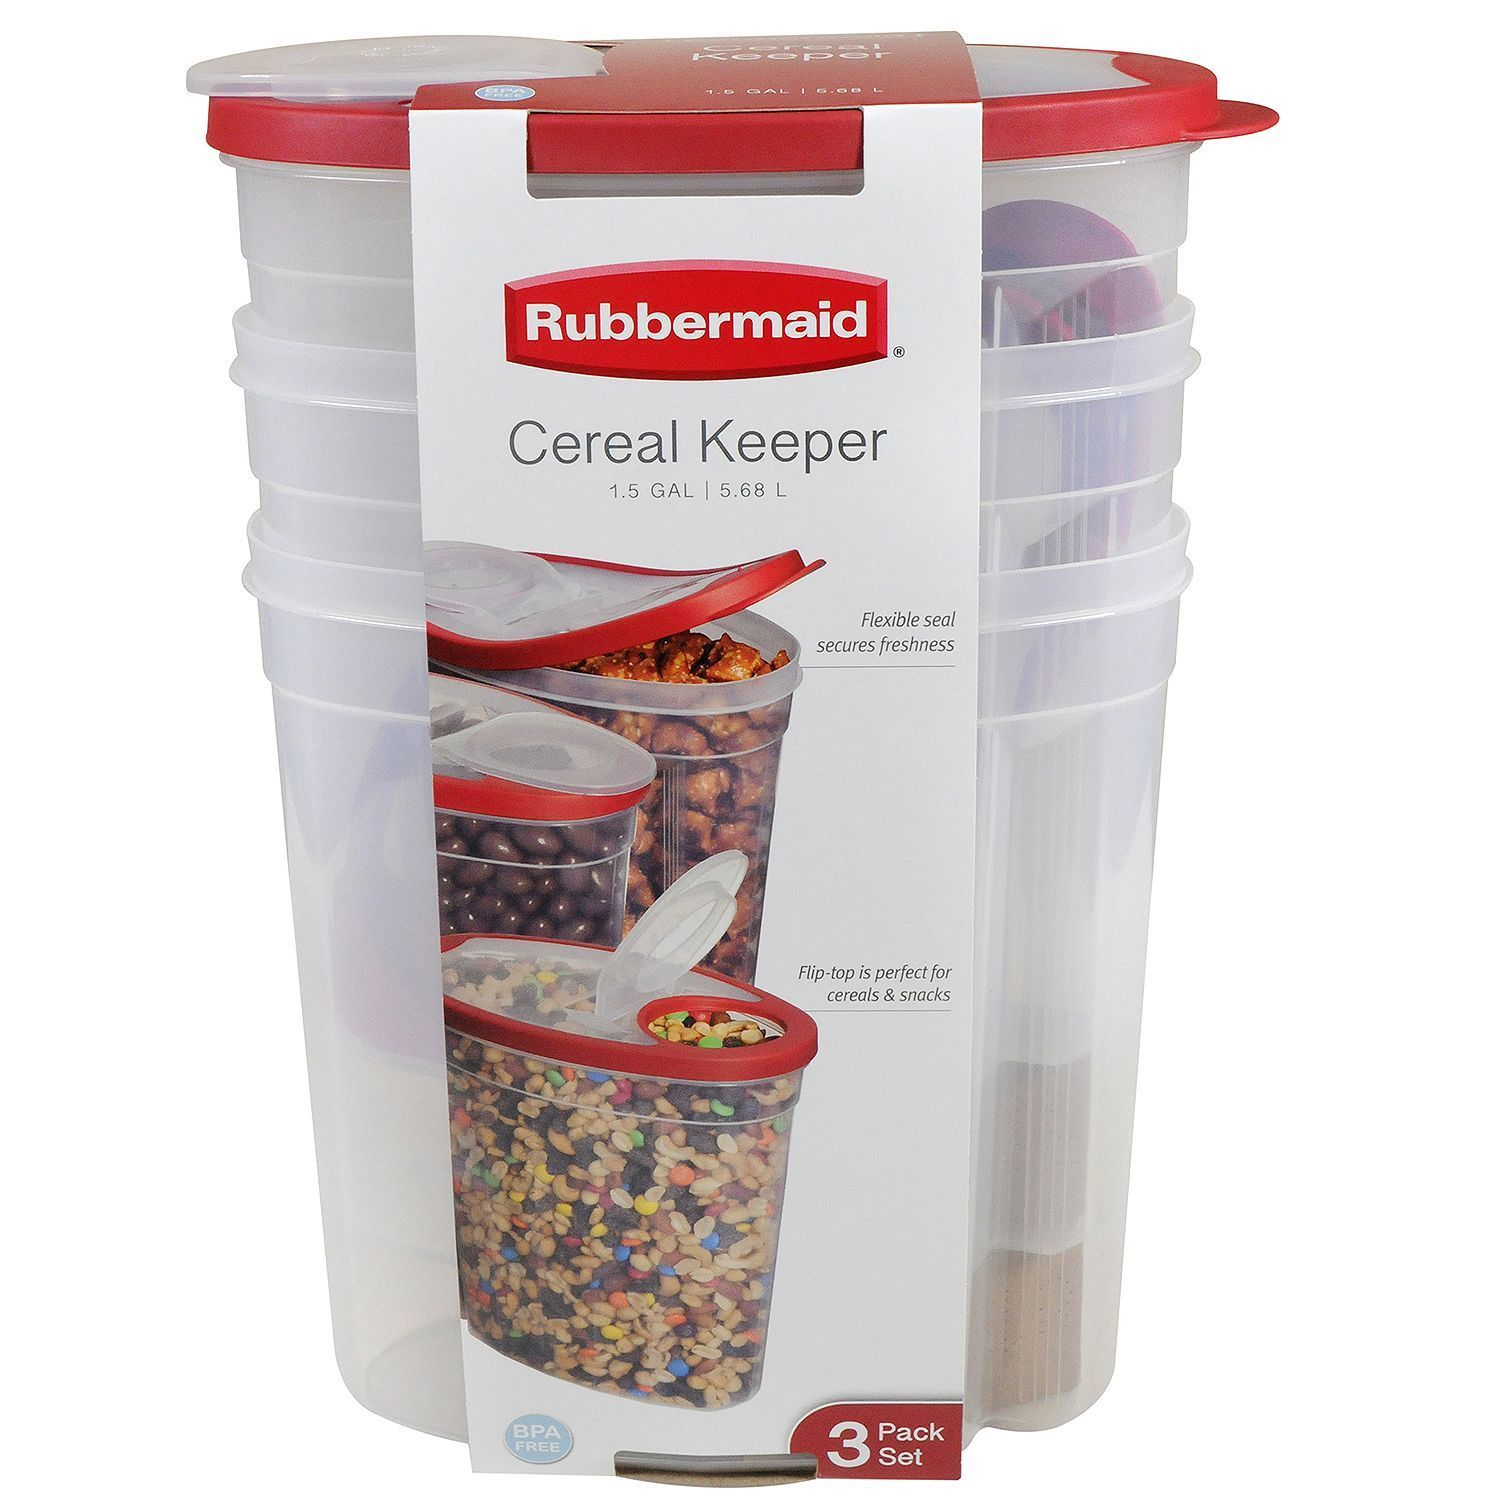 Rubbermaid Cereal Keeper Plastic Storage Container Food Holder Set 3-Pk 1